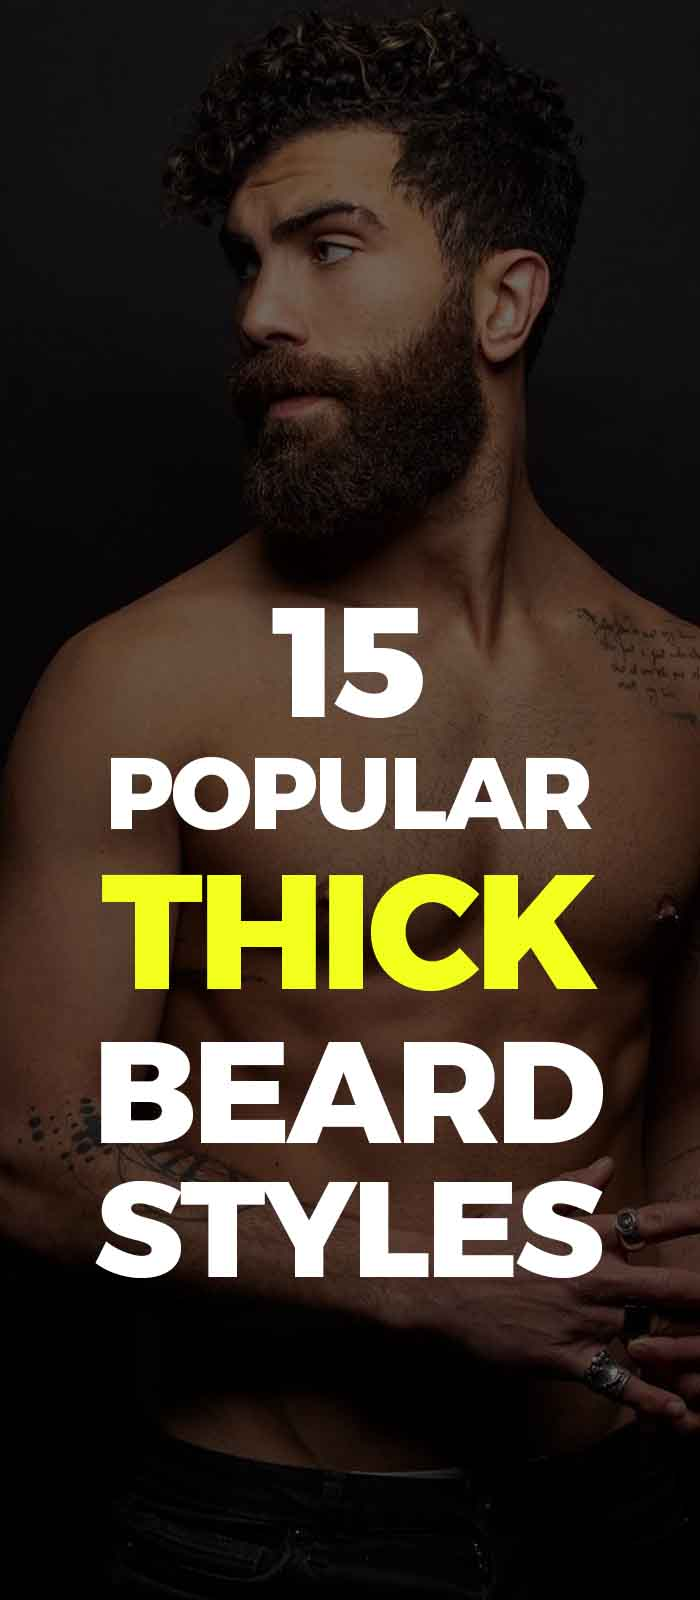 Sexy thick and popular beard styles for men!